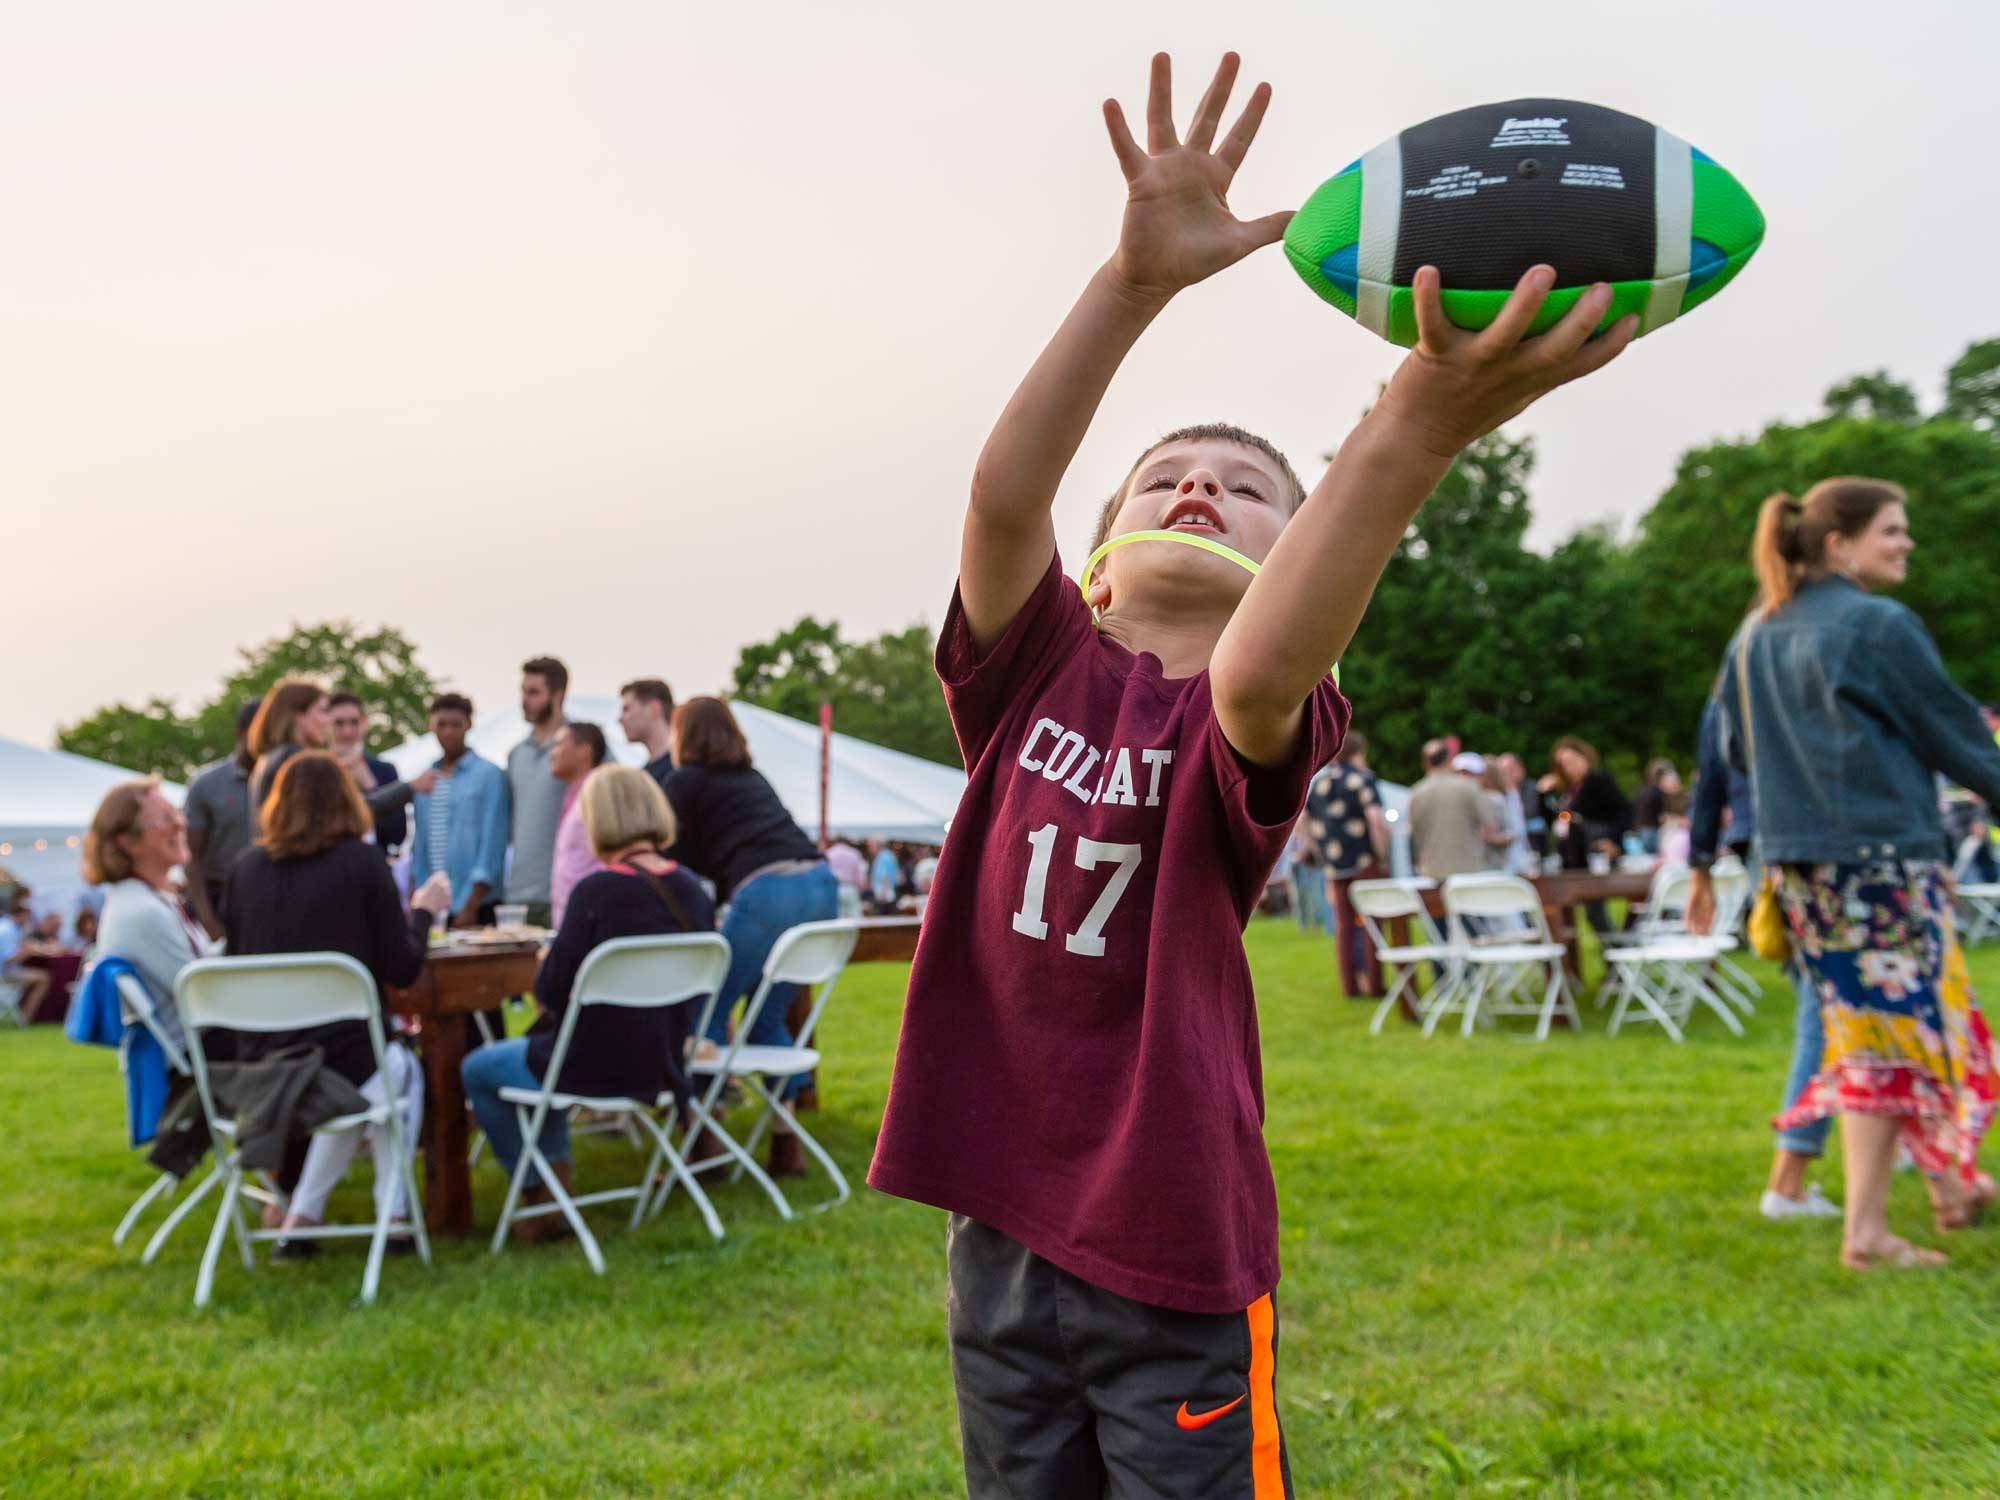 Child catches ball during Reunion picnic